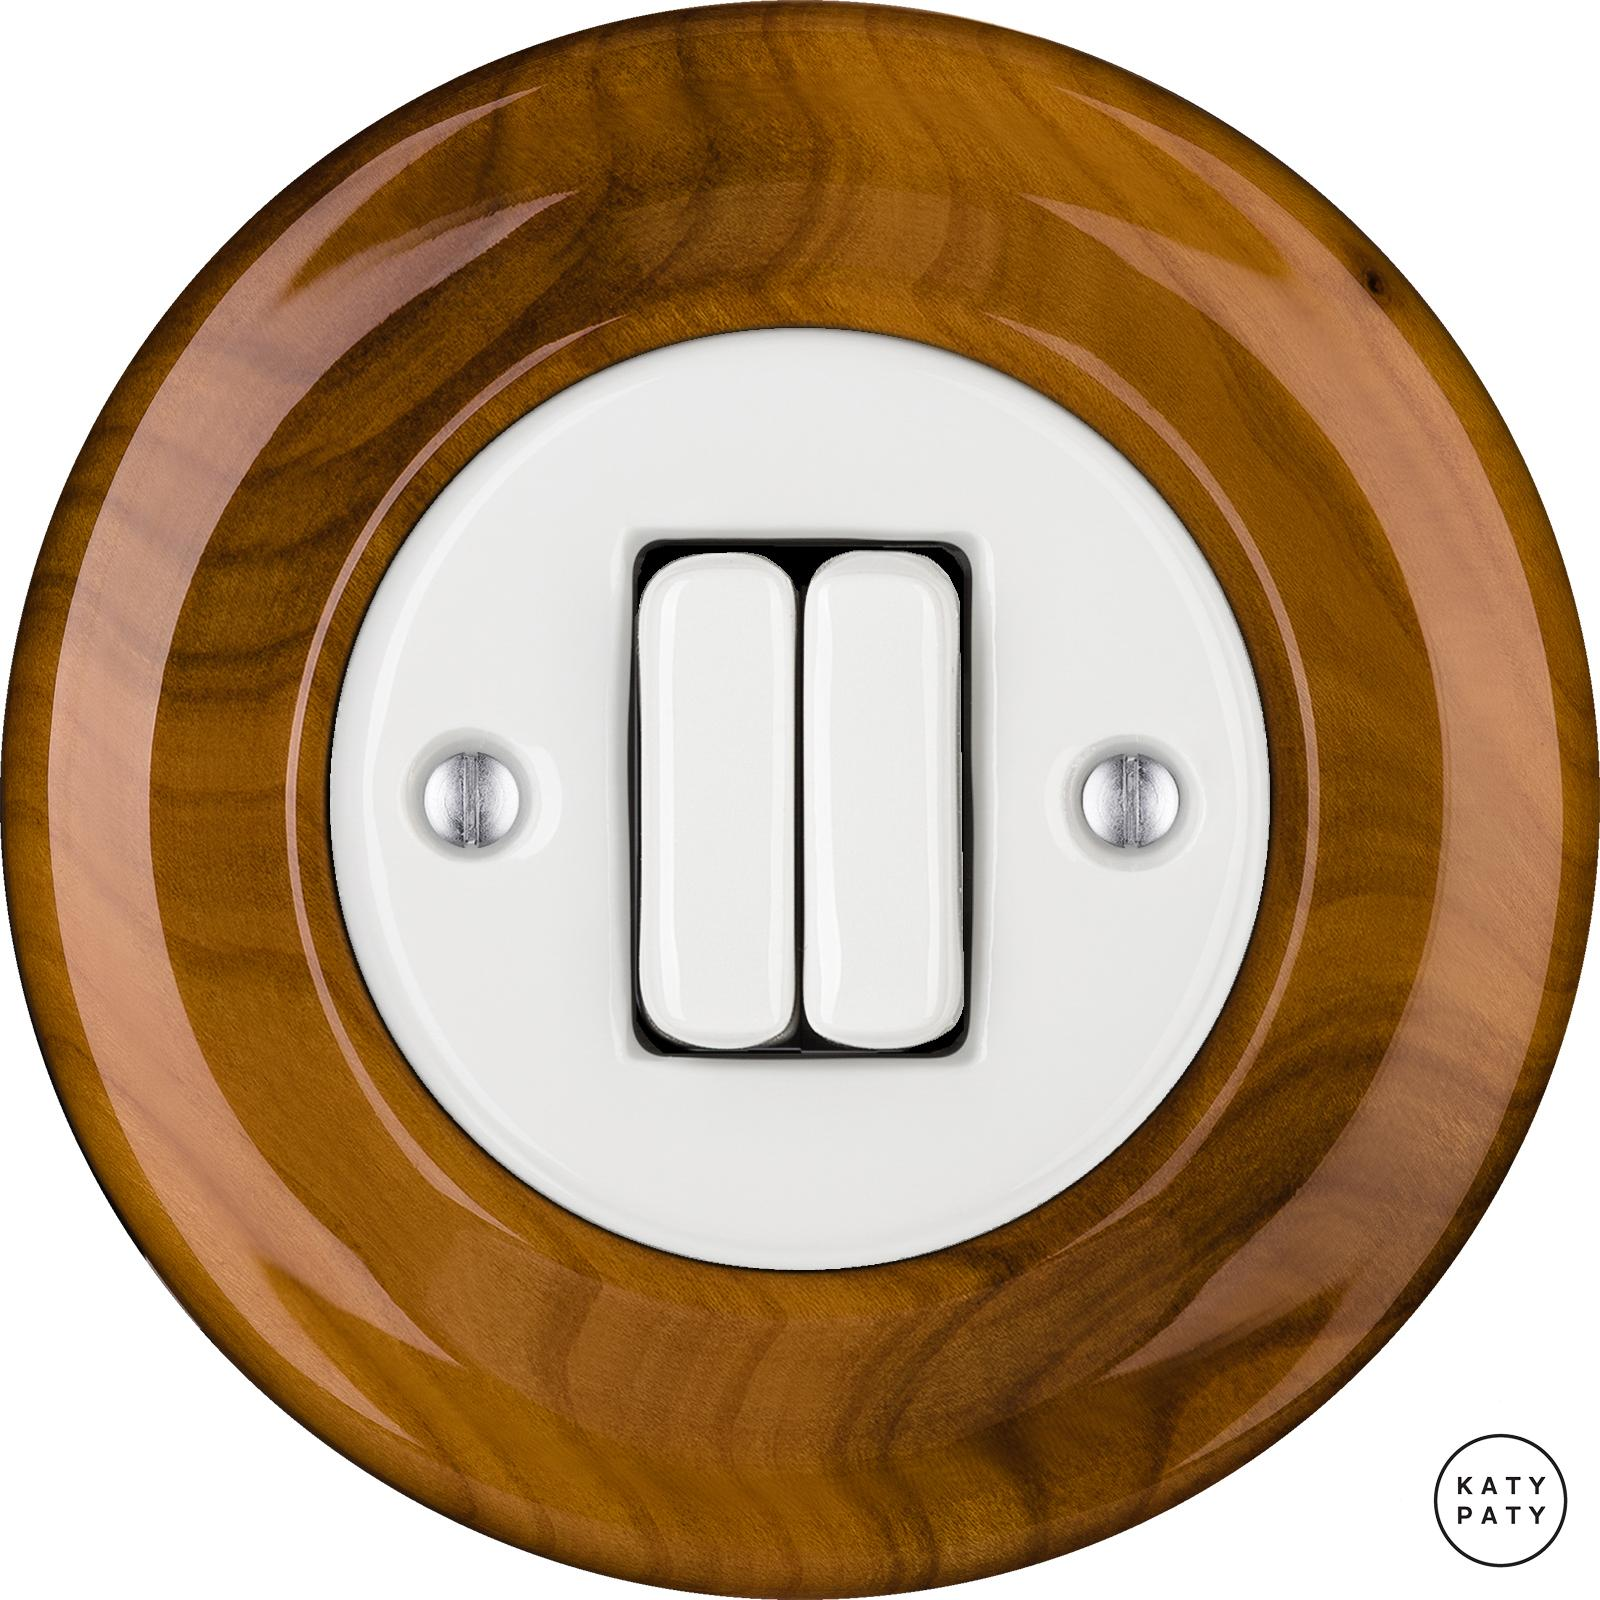 Porcelain switches - a 2 gang ()  - PADELUS | Katy Paty